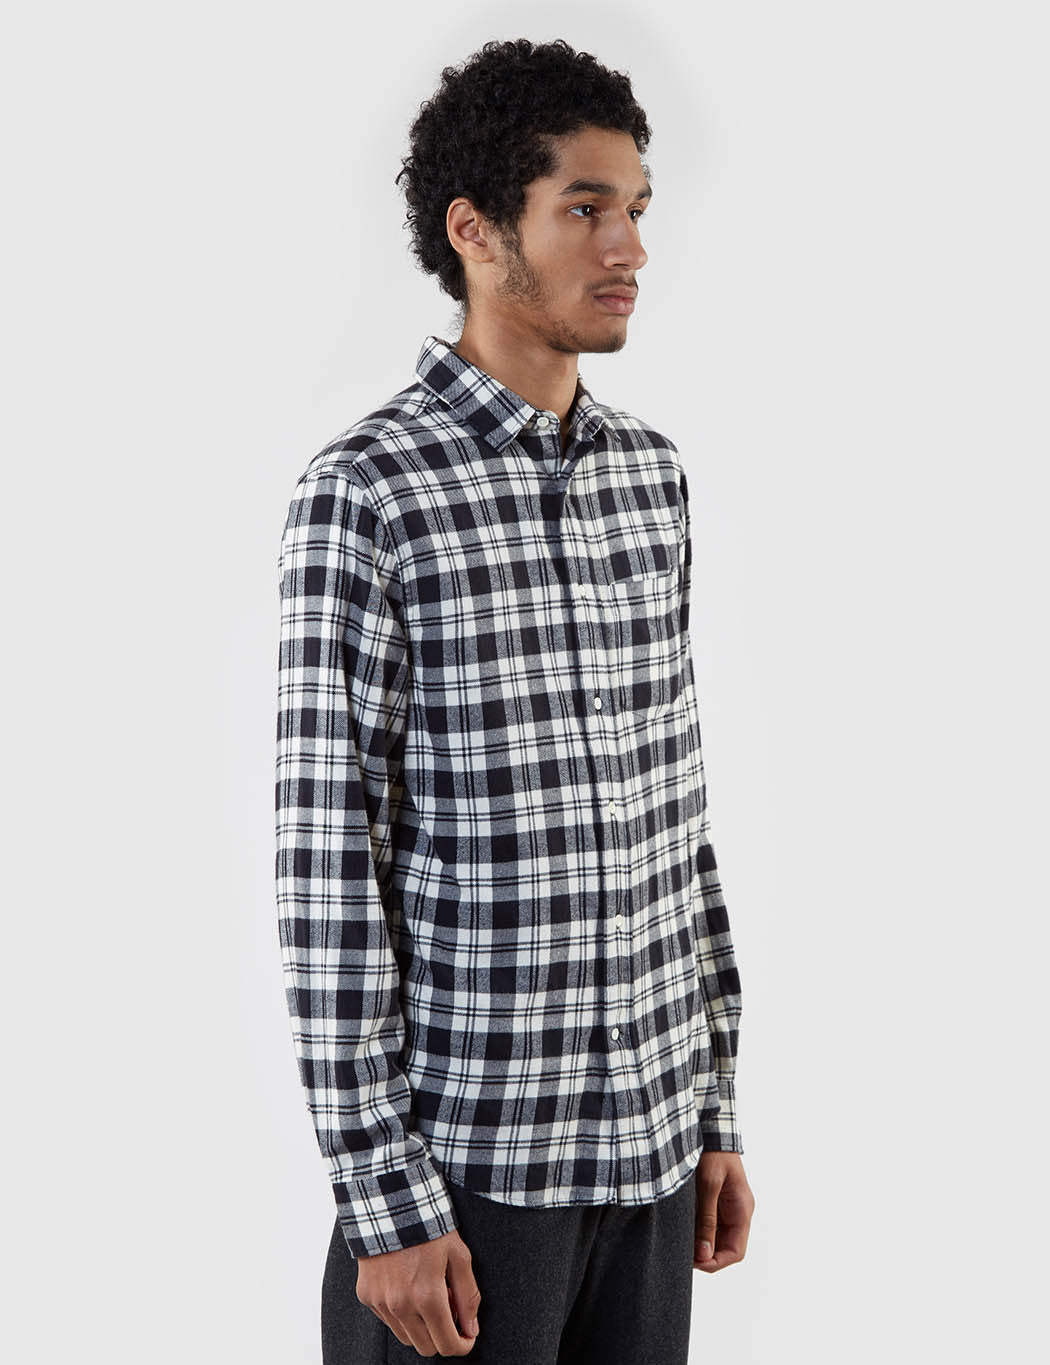 Gant Rugger Brooklyn Twill Checked Shirt - Black